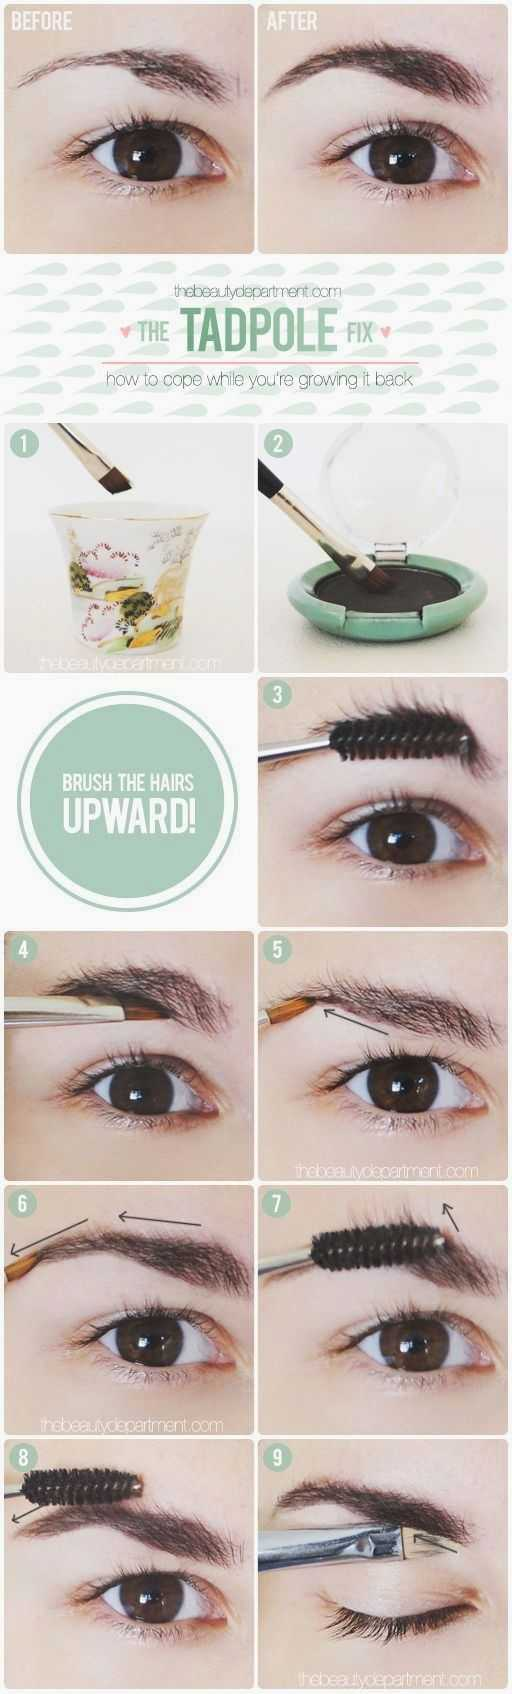 How To Disguise Over-Plucked Brows